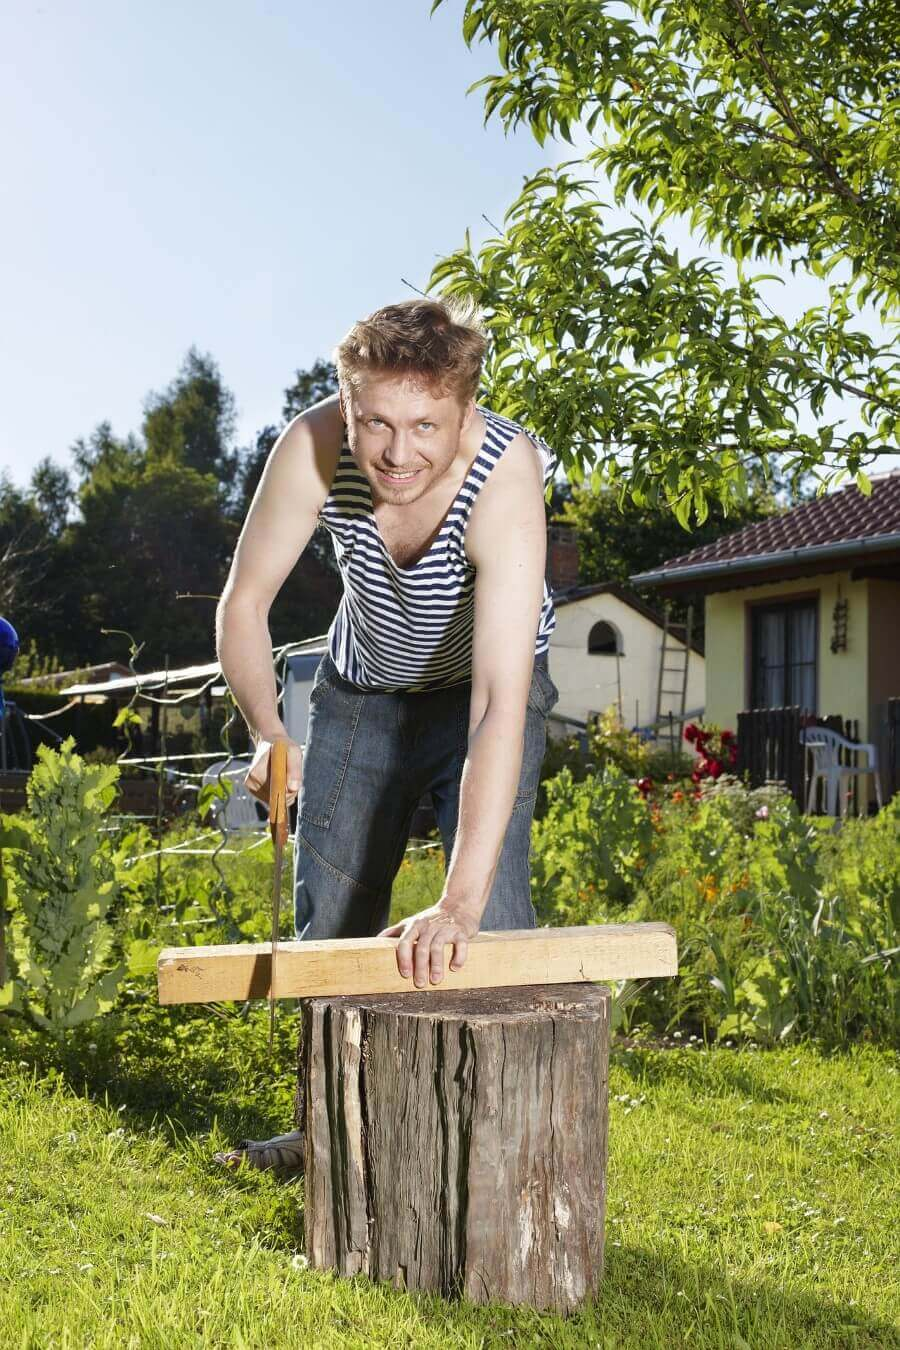 man cutting a piece of wood using a saw